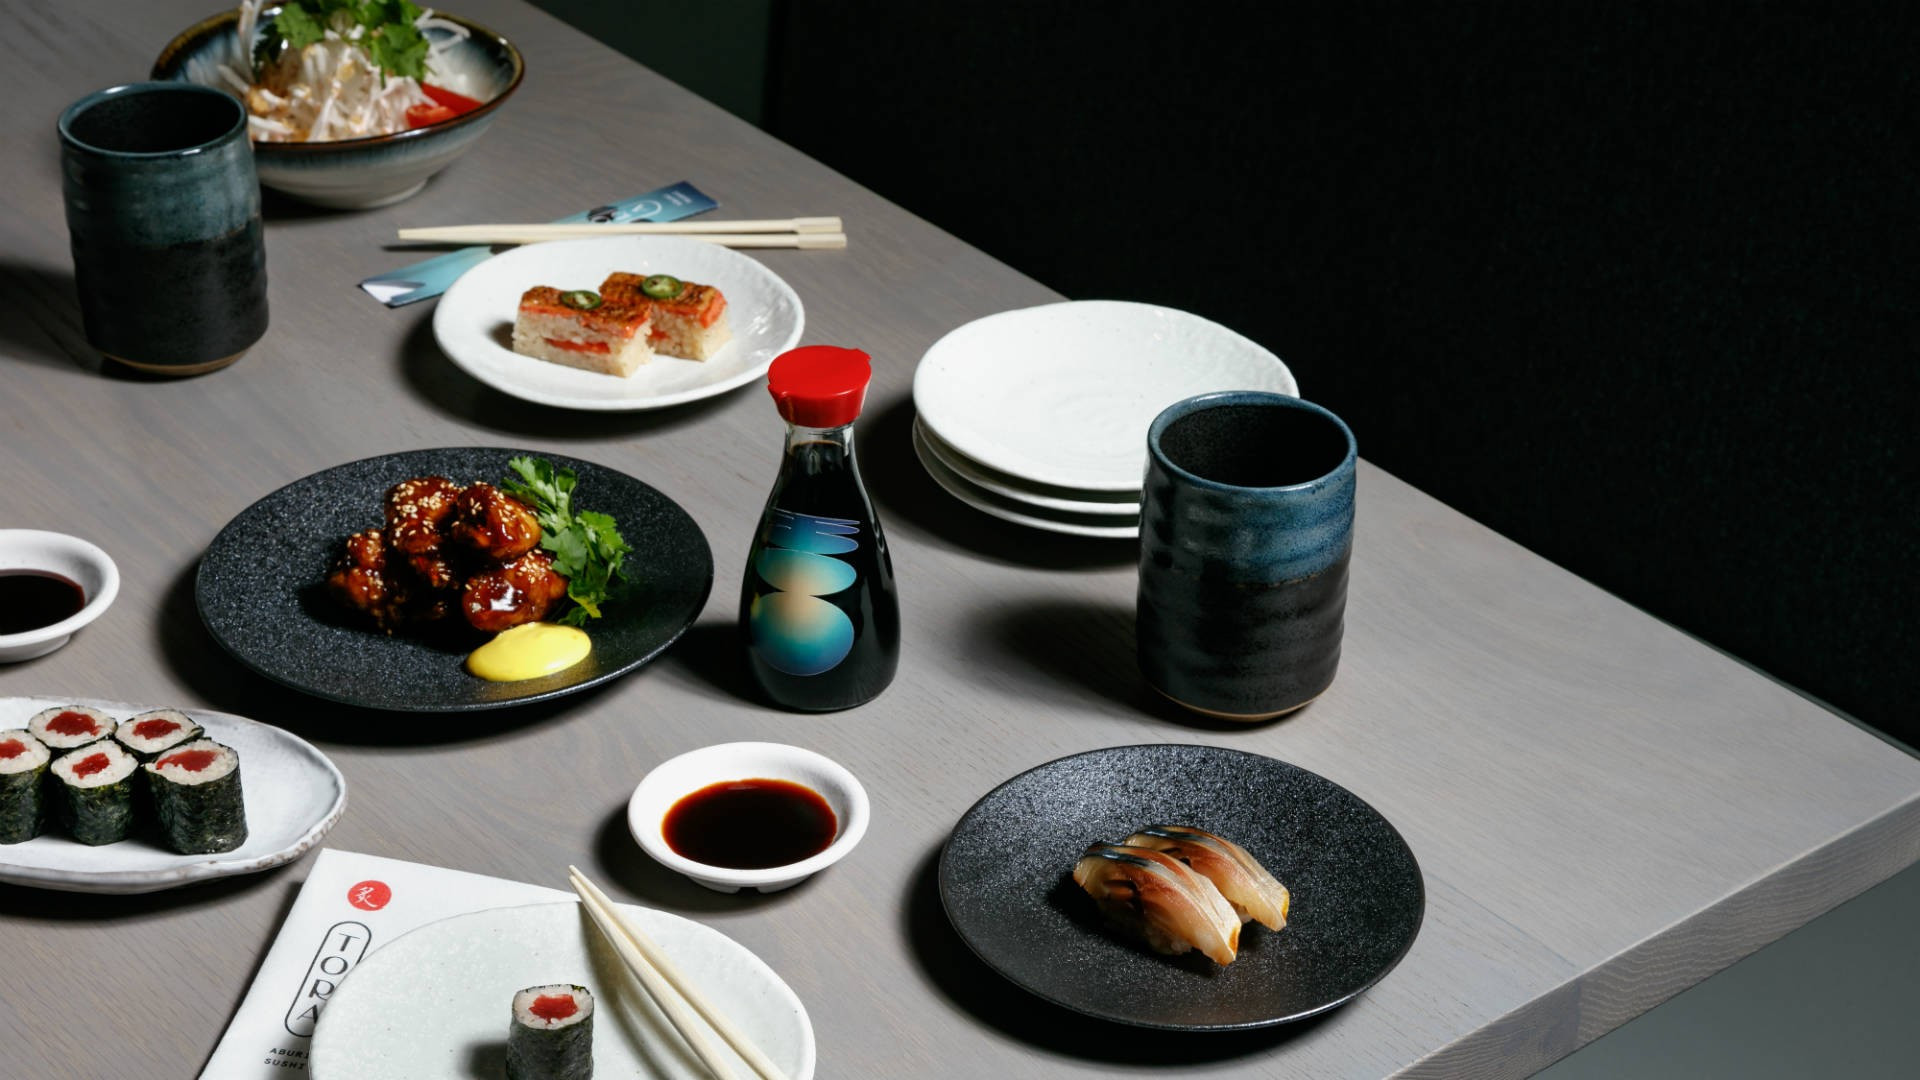 The best restaurants offering delivery and takeout in Toronto: table spread of sushi and Japanese fare at TORA